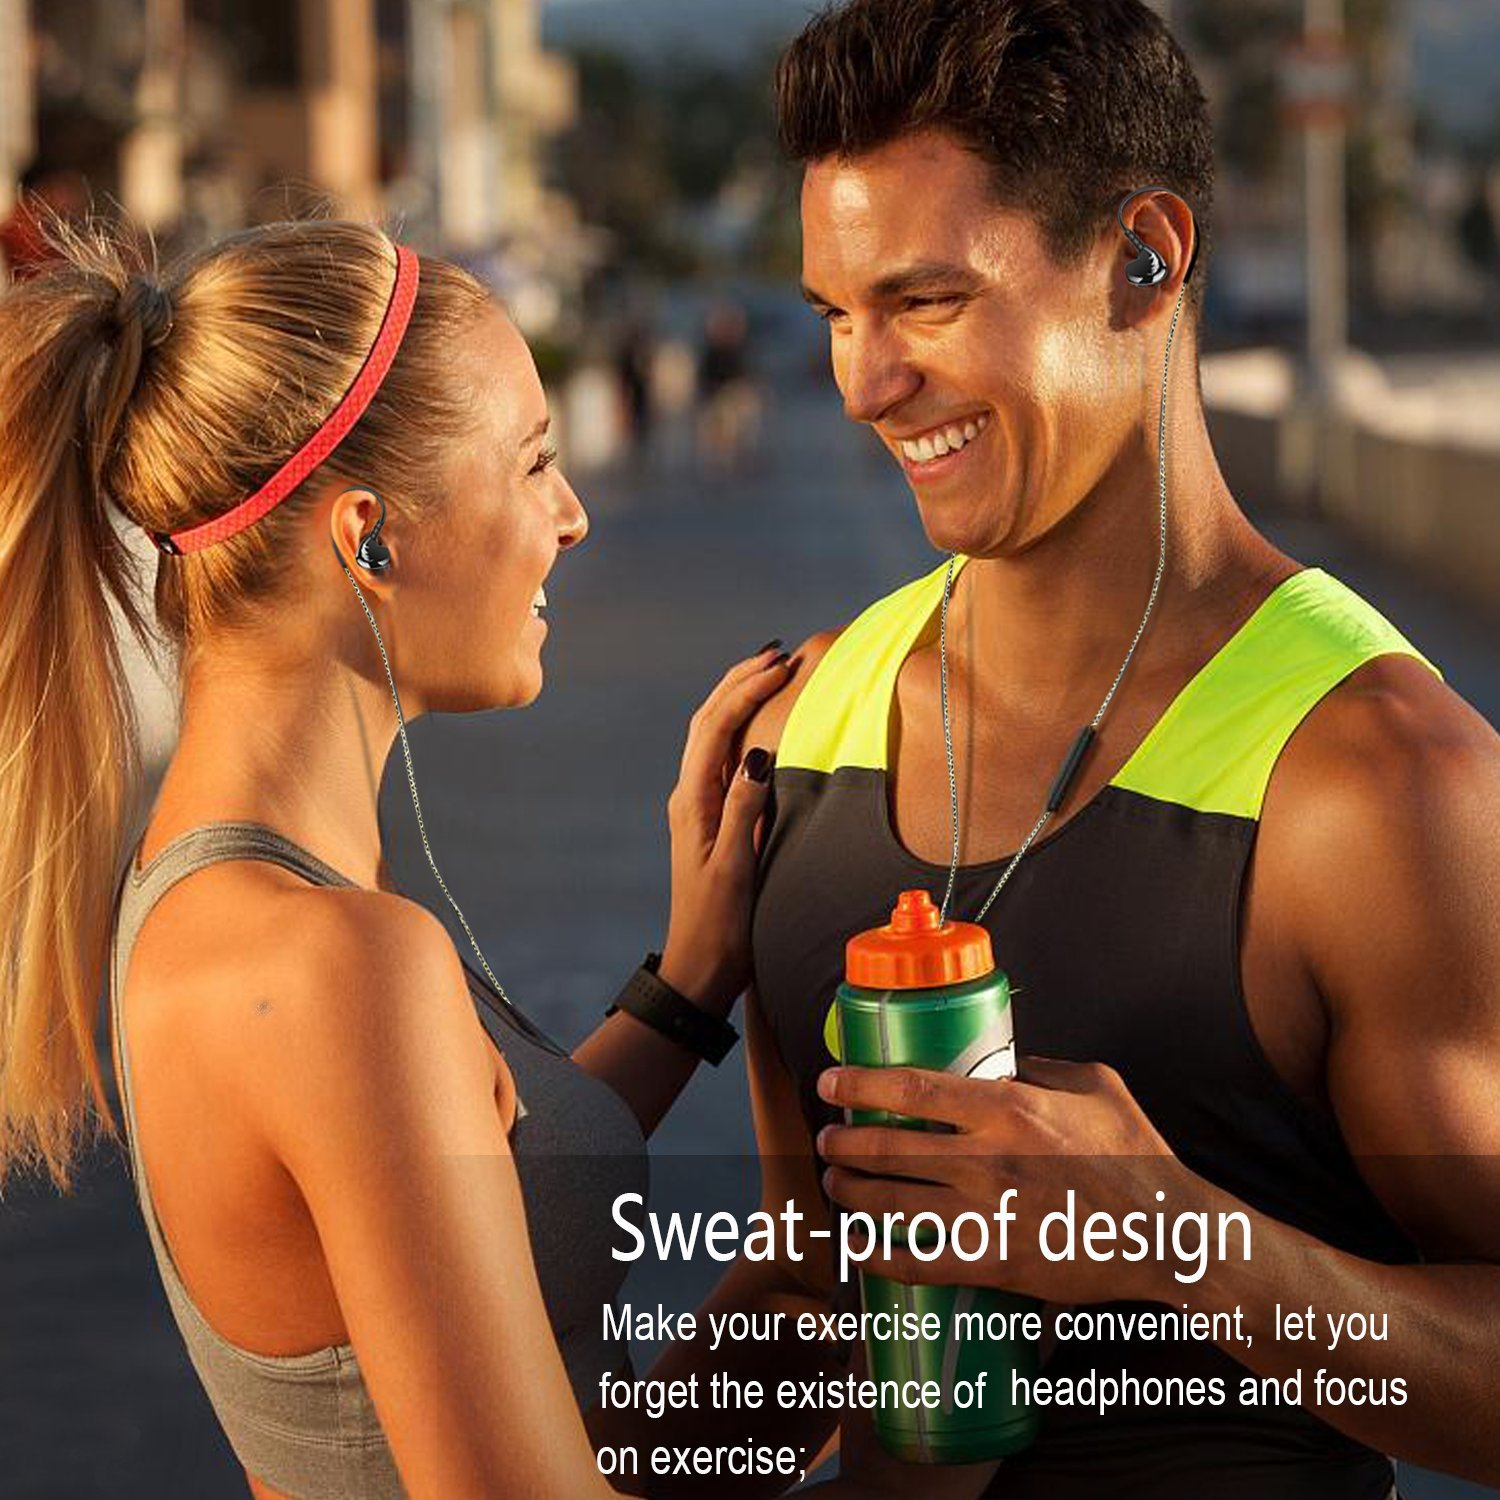 AGPTEK Adjustable Sport in-Ear Wired Earphone for Mp3 Players, Smartphones, Laptops, Tablets with 3.5mm Audio Line-in, 5 Sets Silicon Ear Buds (Green) by AGPTEK (Image #7)